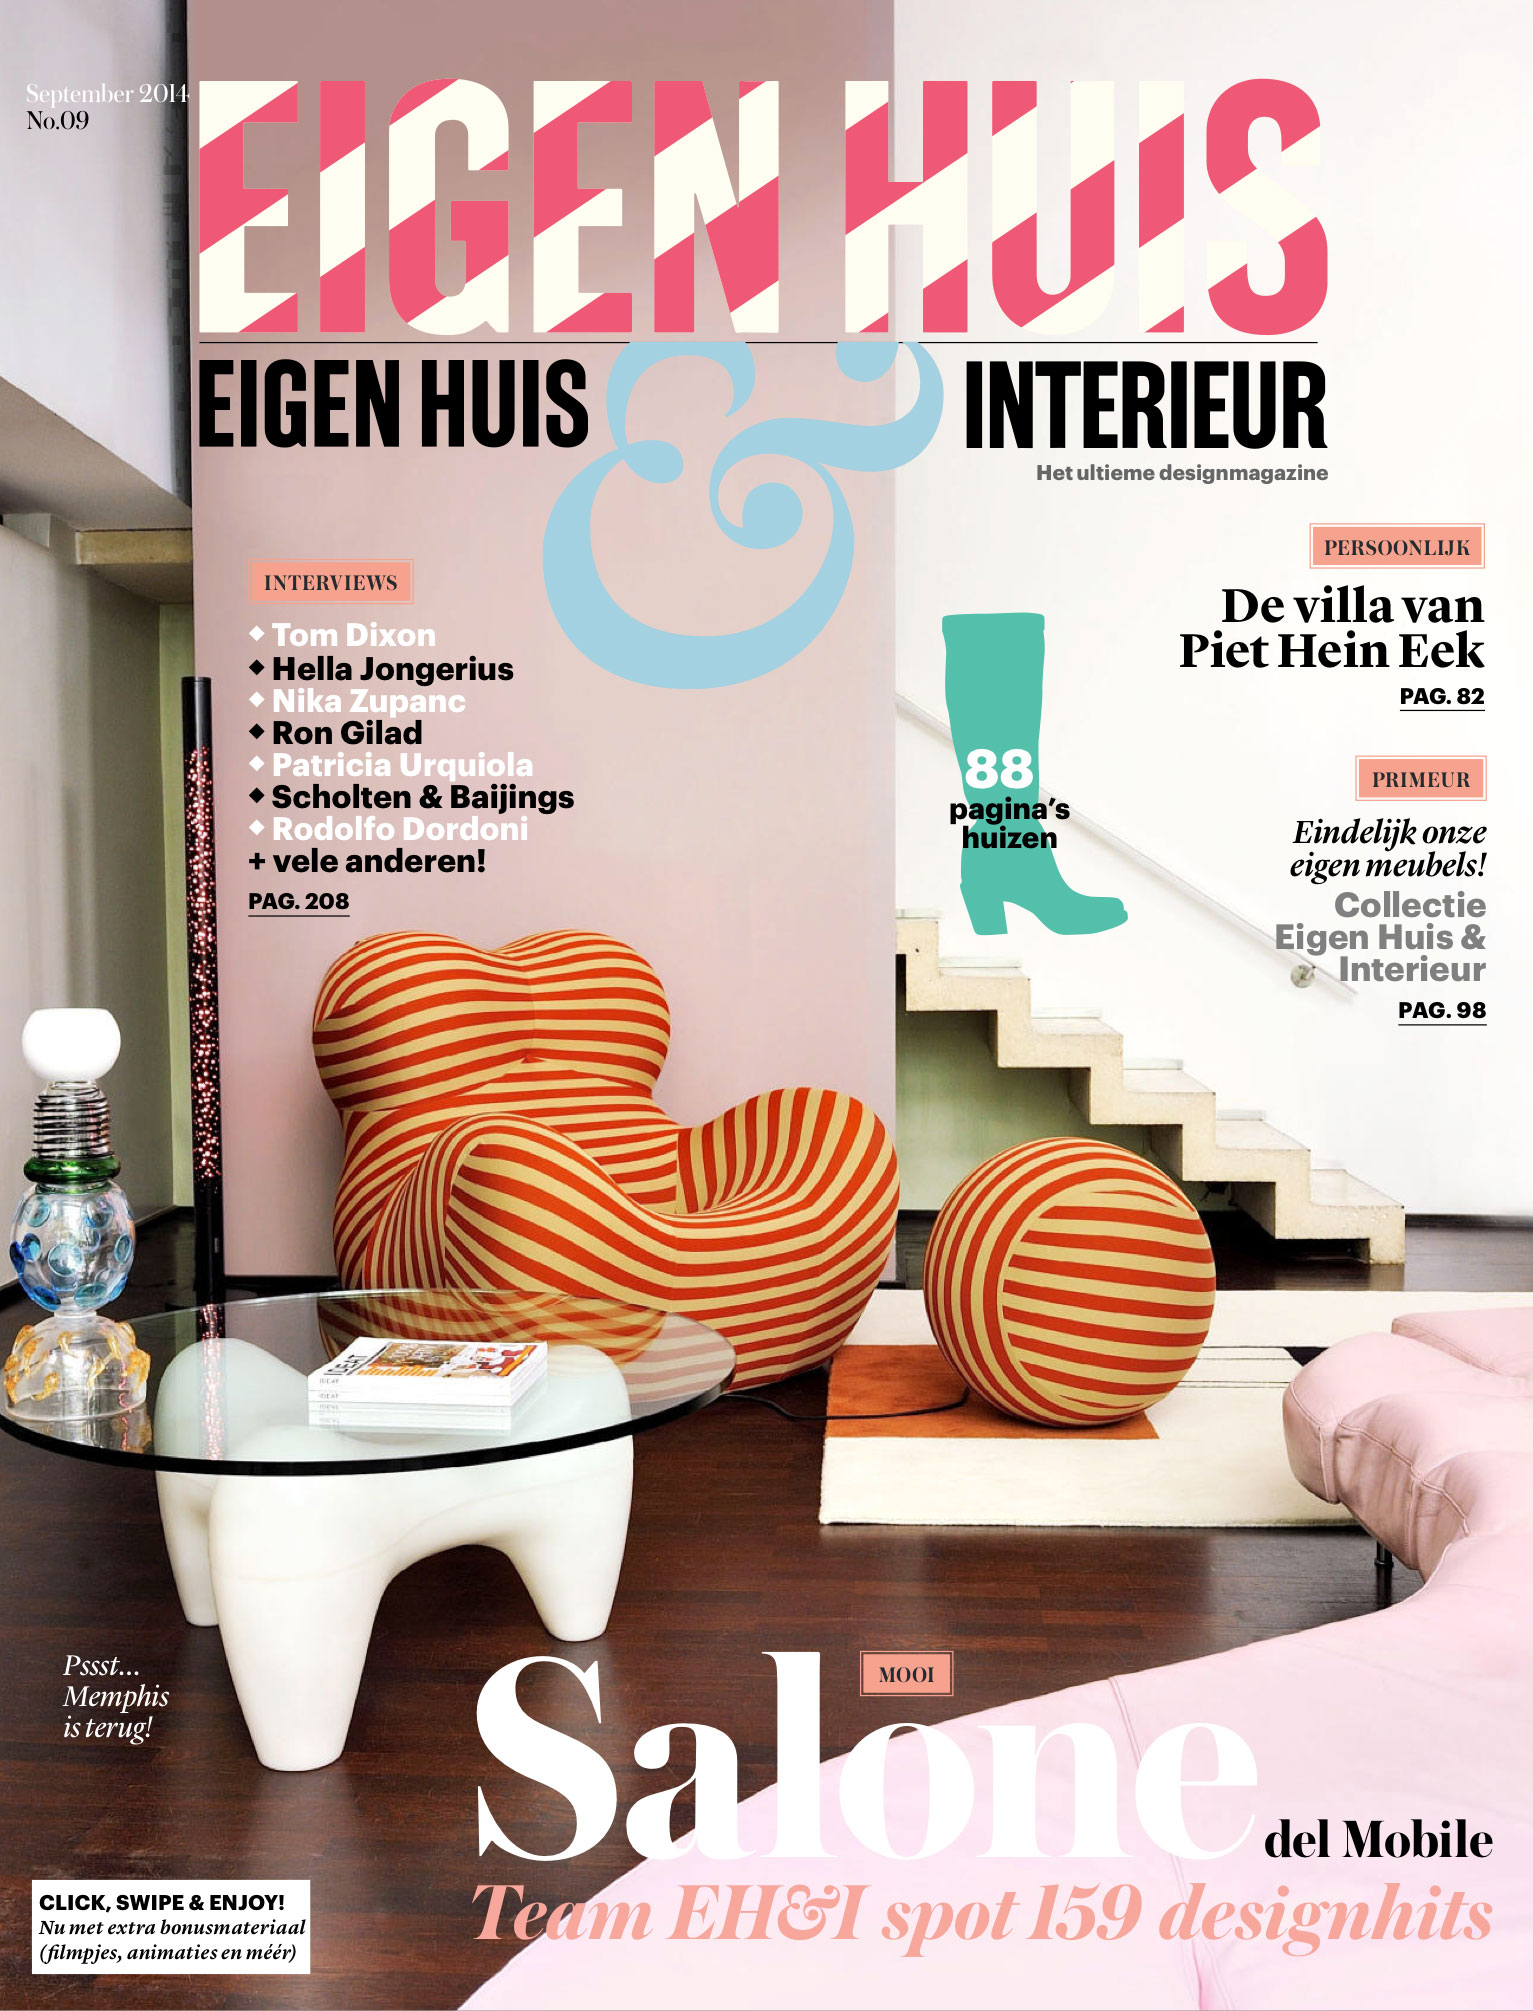 Eigen Huis & Interieur (Netherlands) September 2014 - FRAMES wall